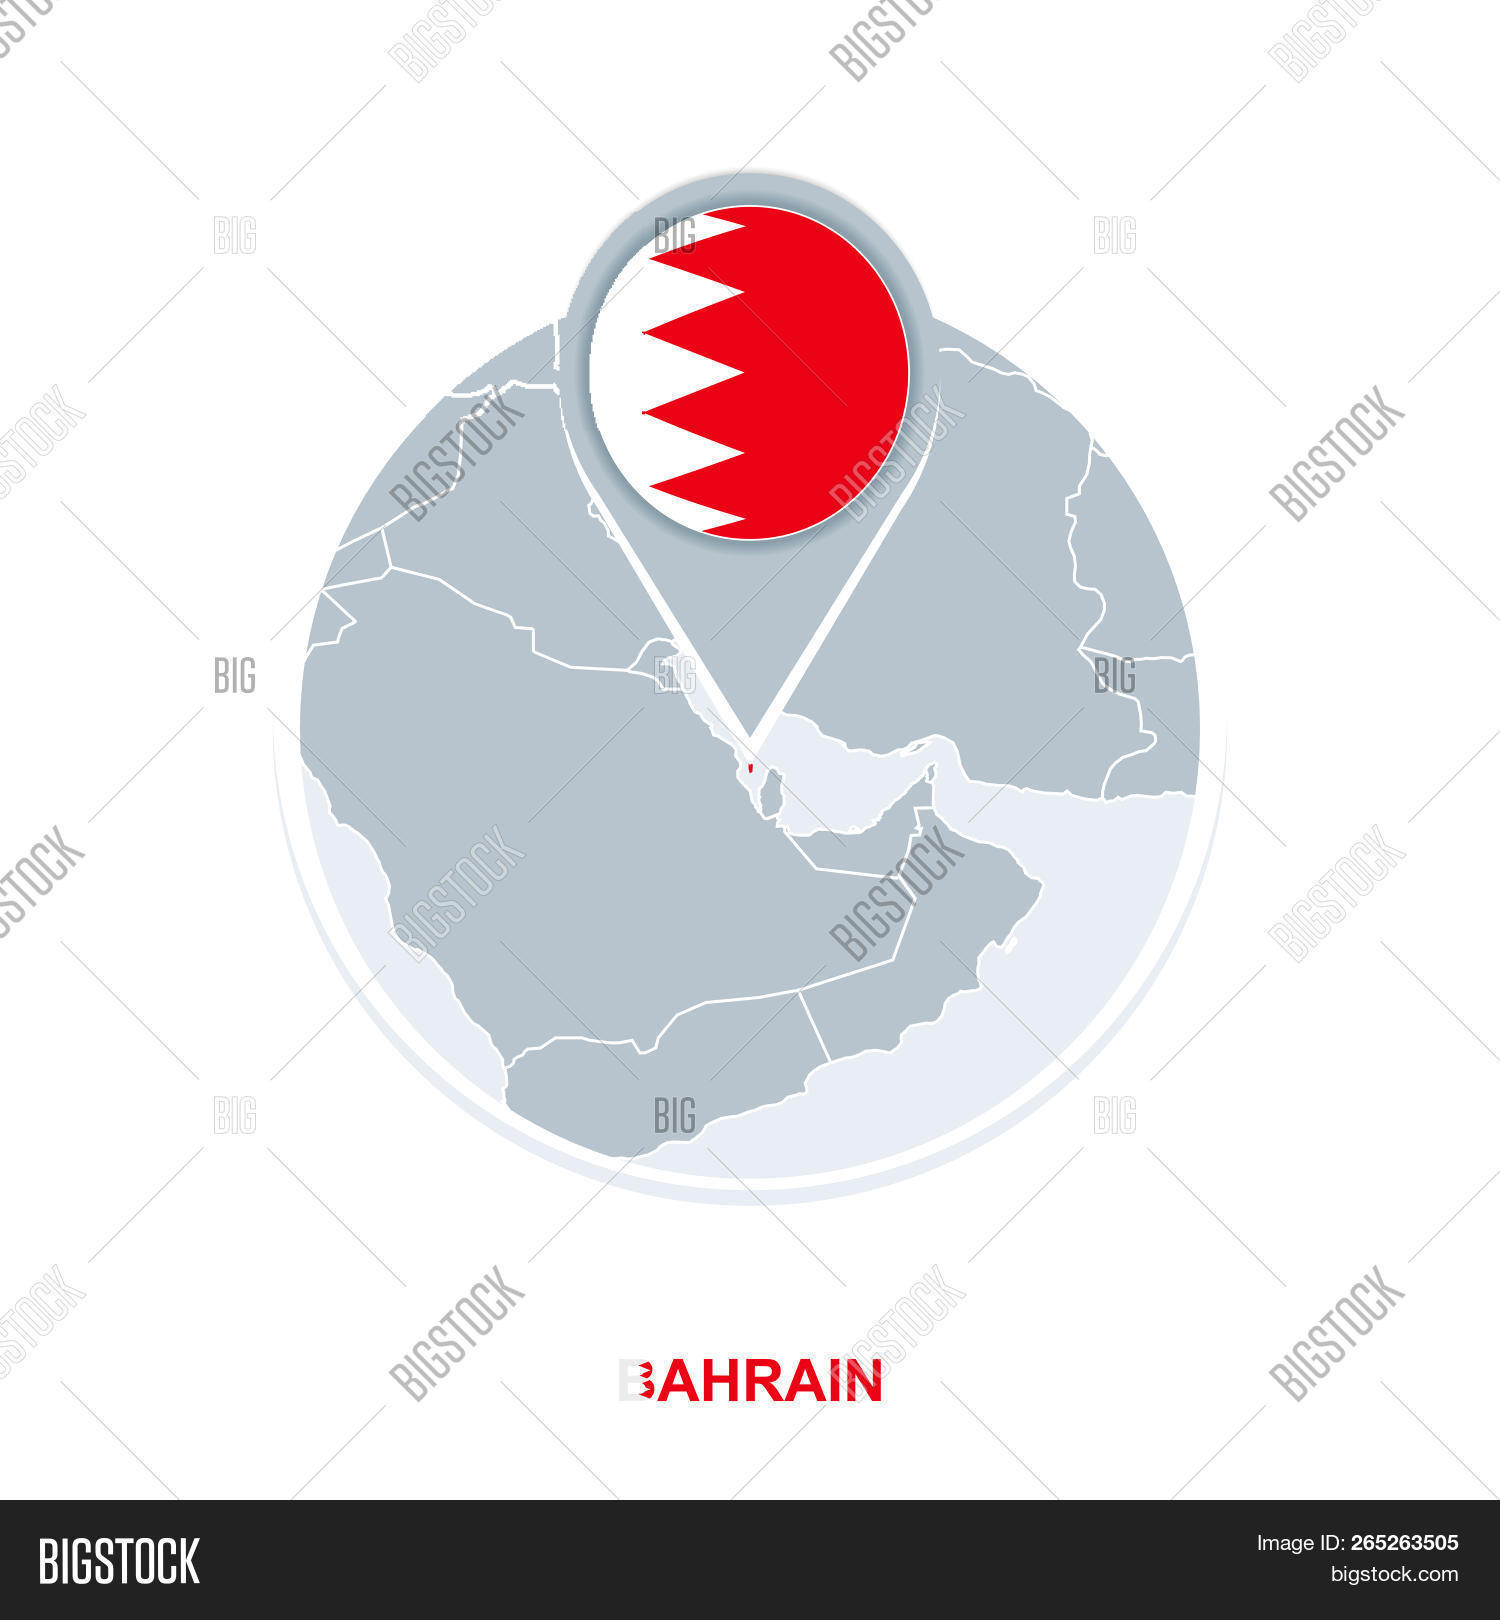 Bahrain Map Flag, Vector & Photo (Free Trial) | Bigstock on map of oman, map of western europe, map of sinai peninsula, map of mediterranean countries, map of persian gulf, map of cote d'ivoire, map of italy, map of croatia, map of eritrea, map of greece, map of qatar, map of djibouti, map of kuwait, map of philippines, map of australia, map of czech republic, map saudi arabia, map of western sahara, map of sri lanka, map of middle east,